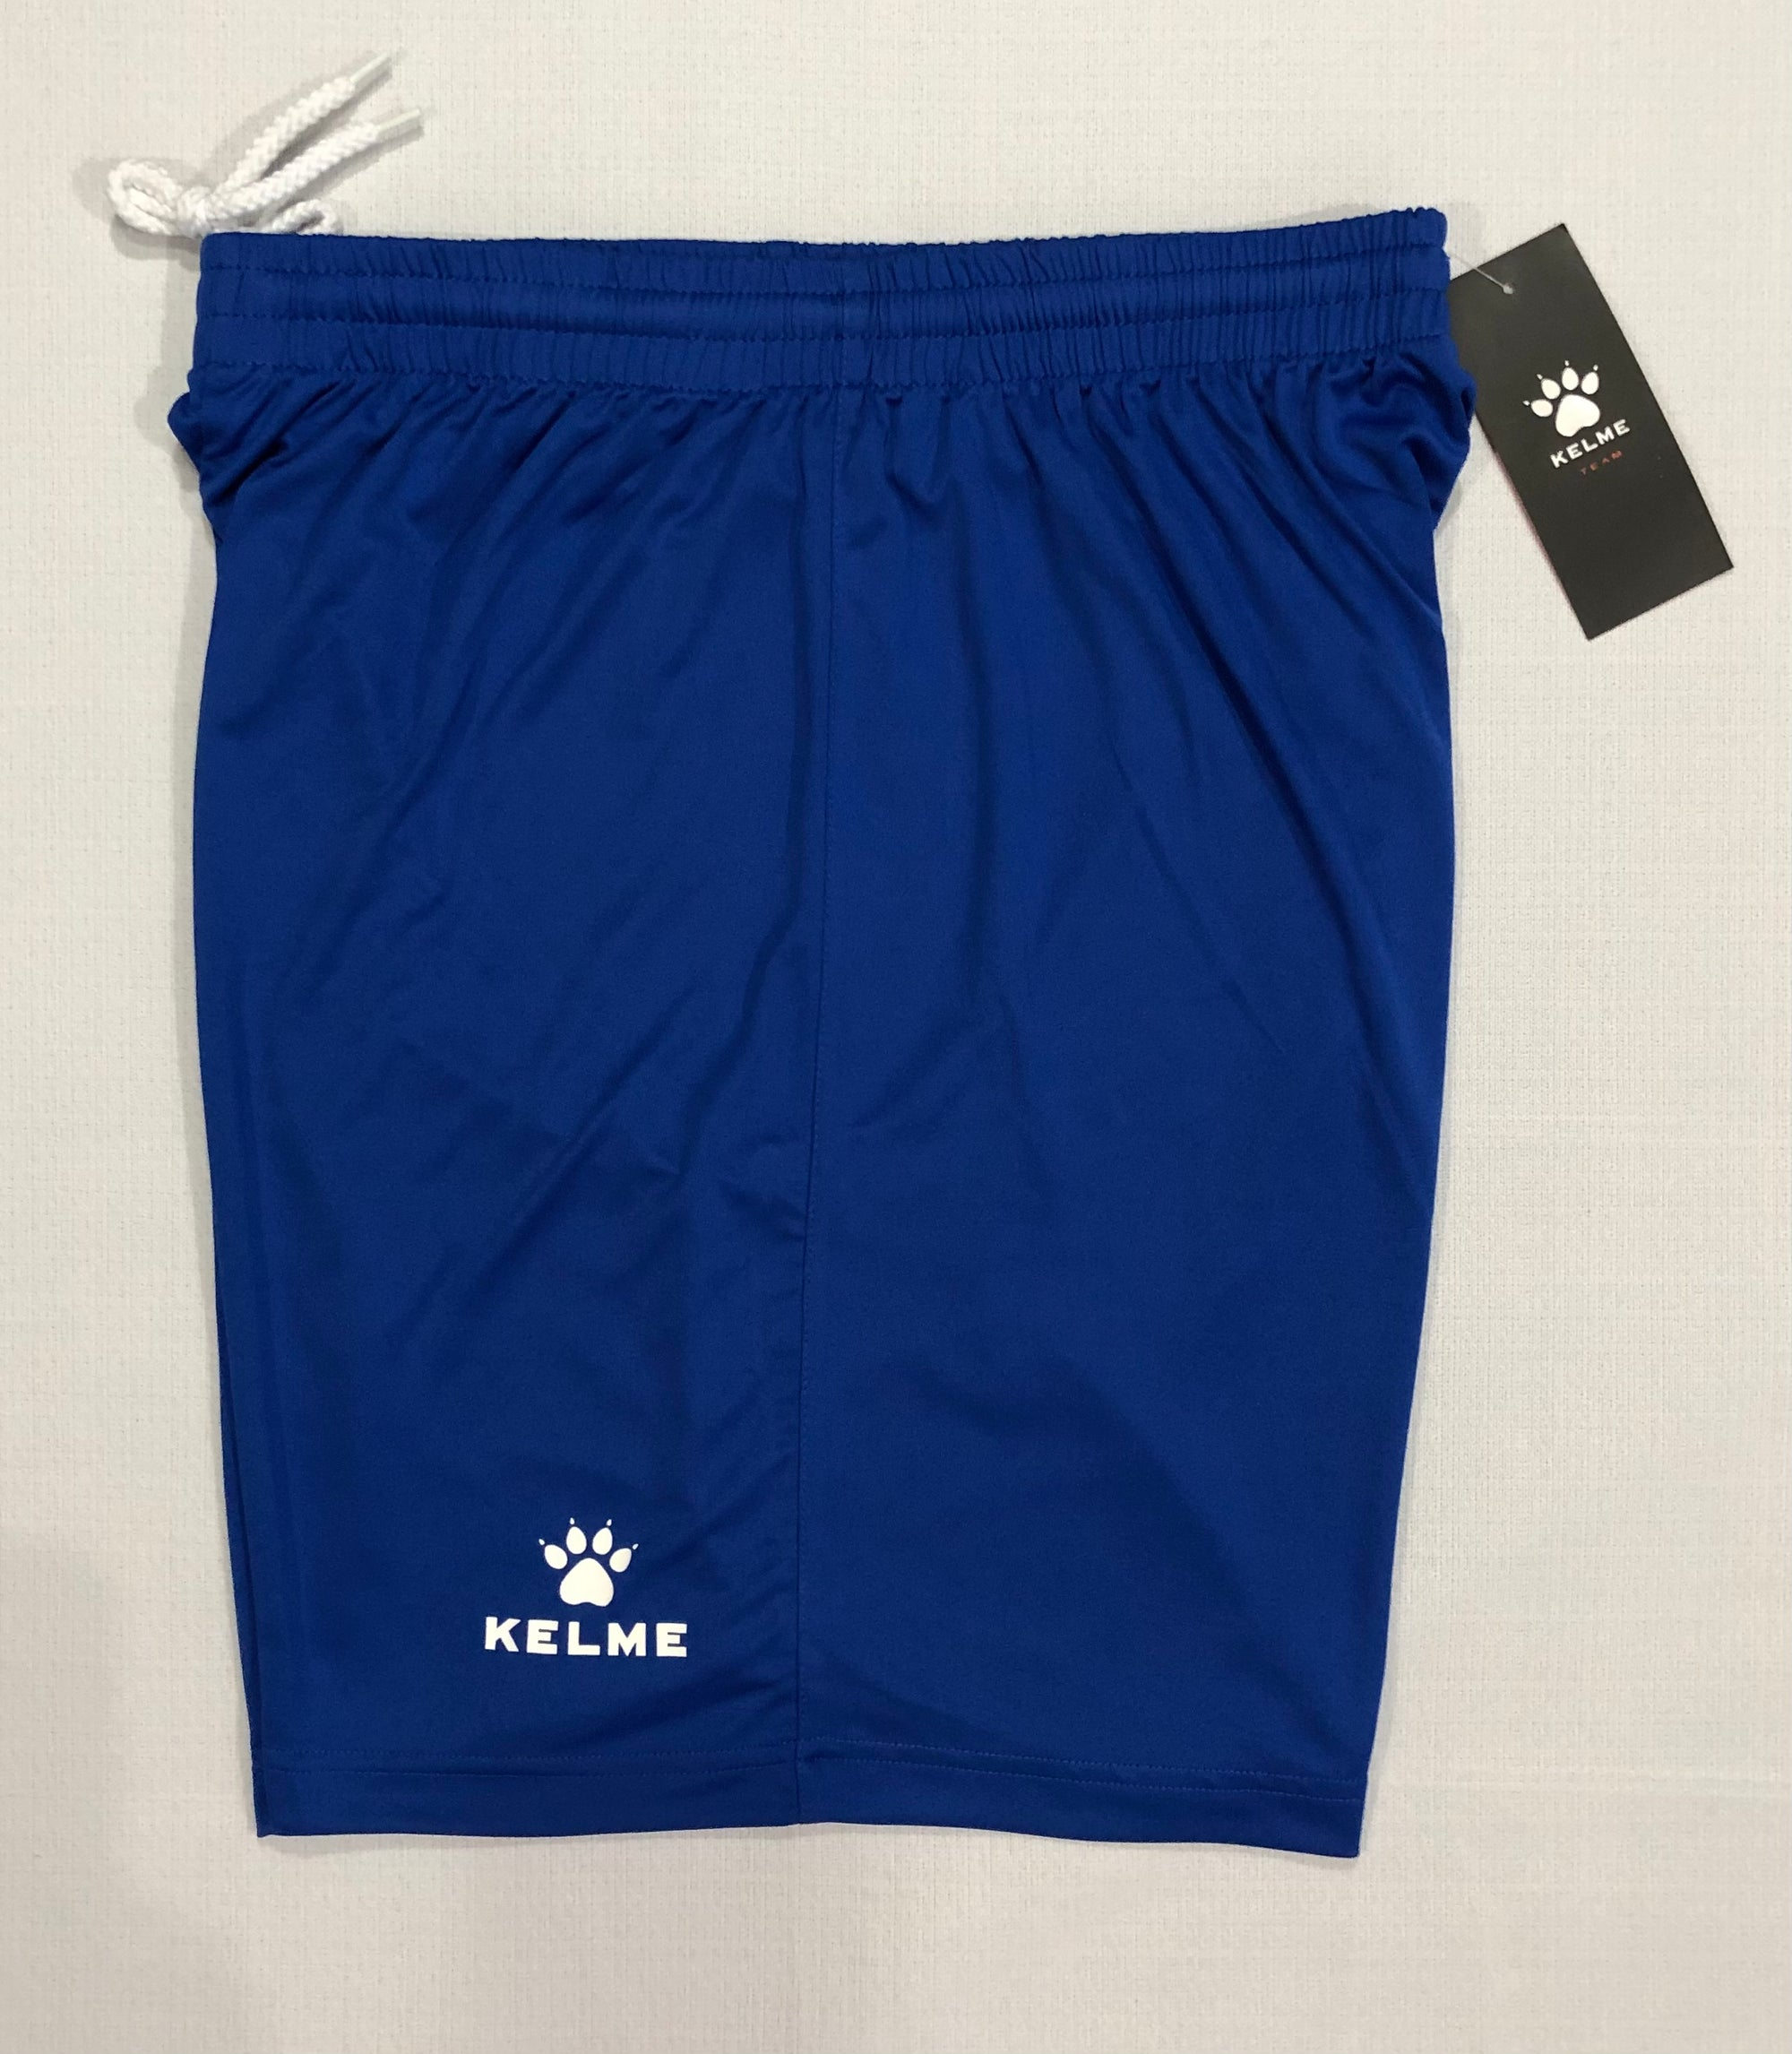 Kelme Adult Short - Royal Blue